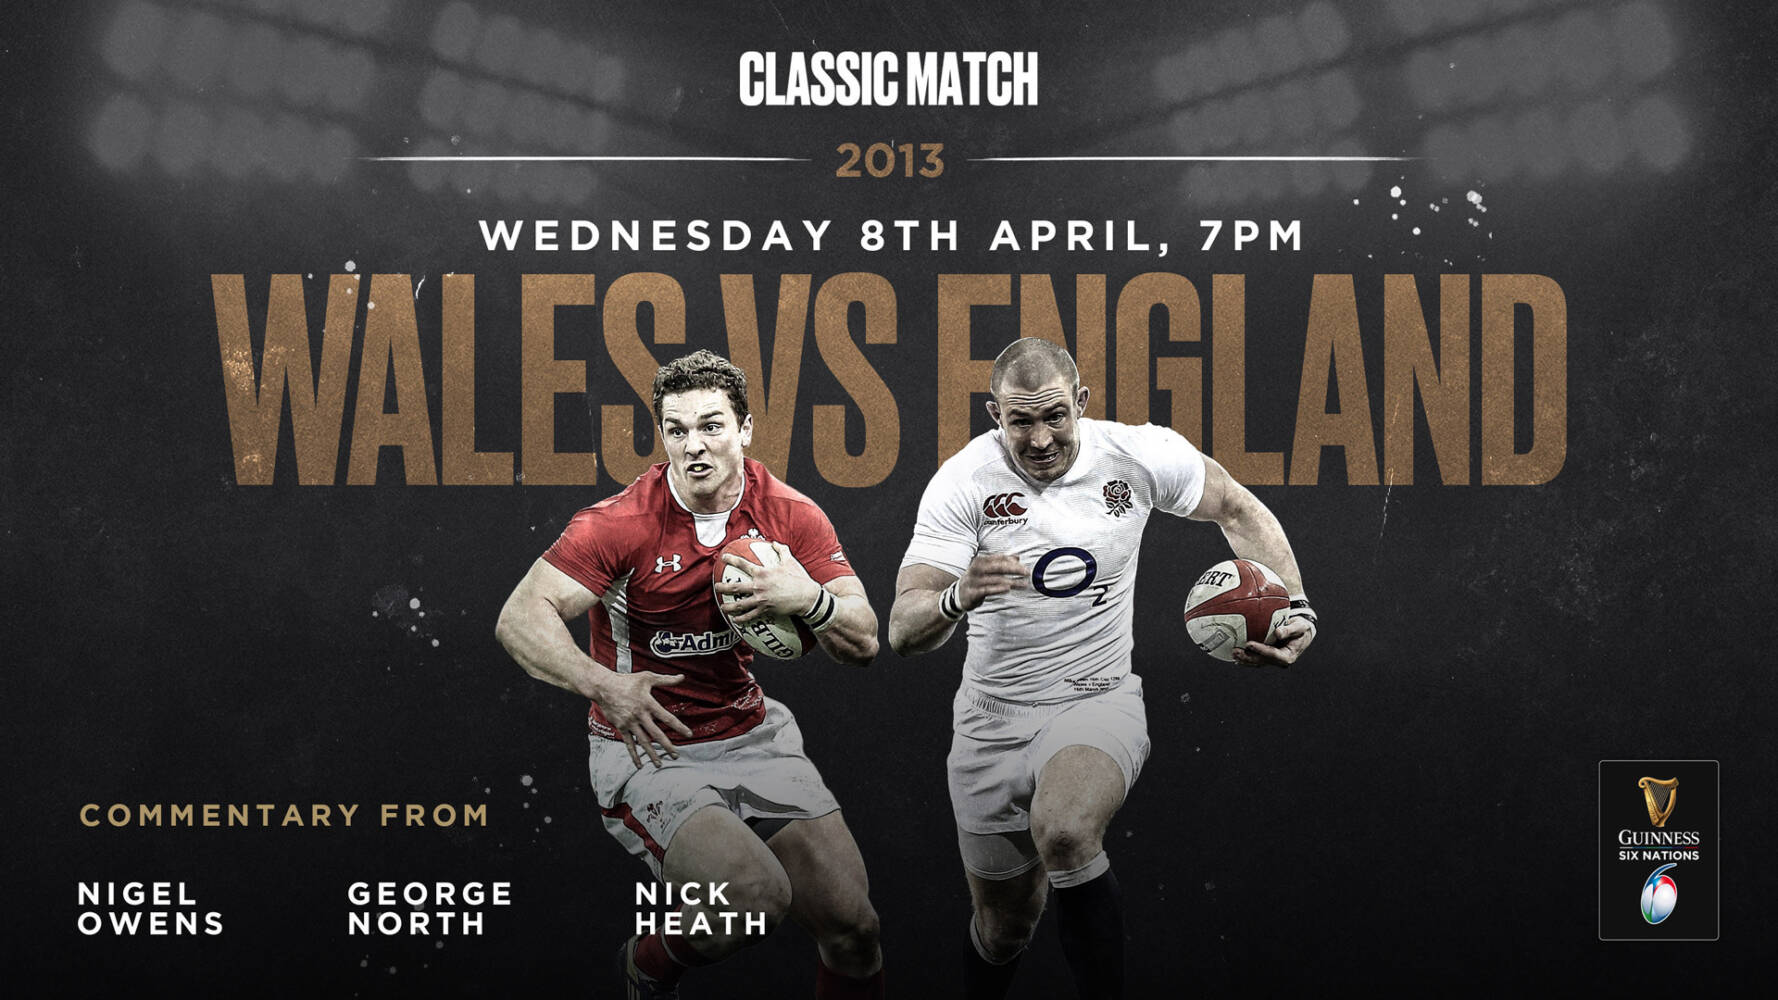 Rugby stars to commentate on 6N classic for NHS charity